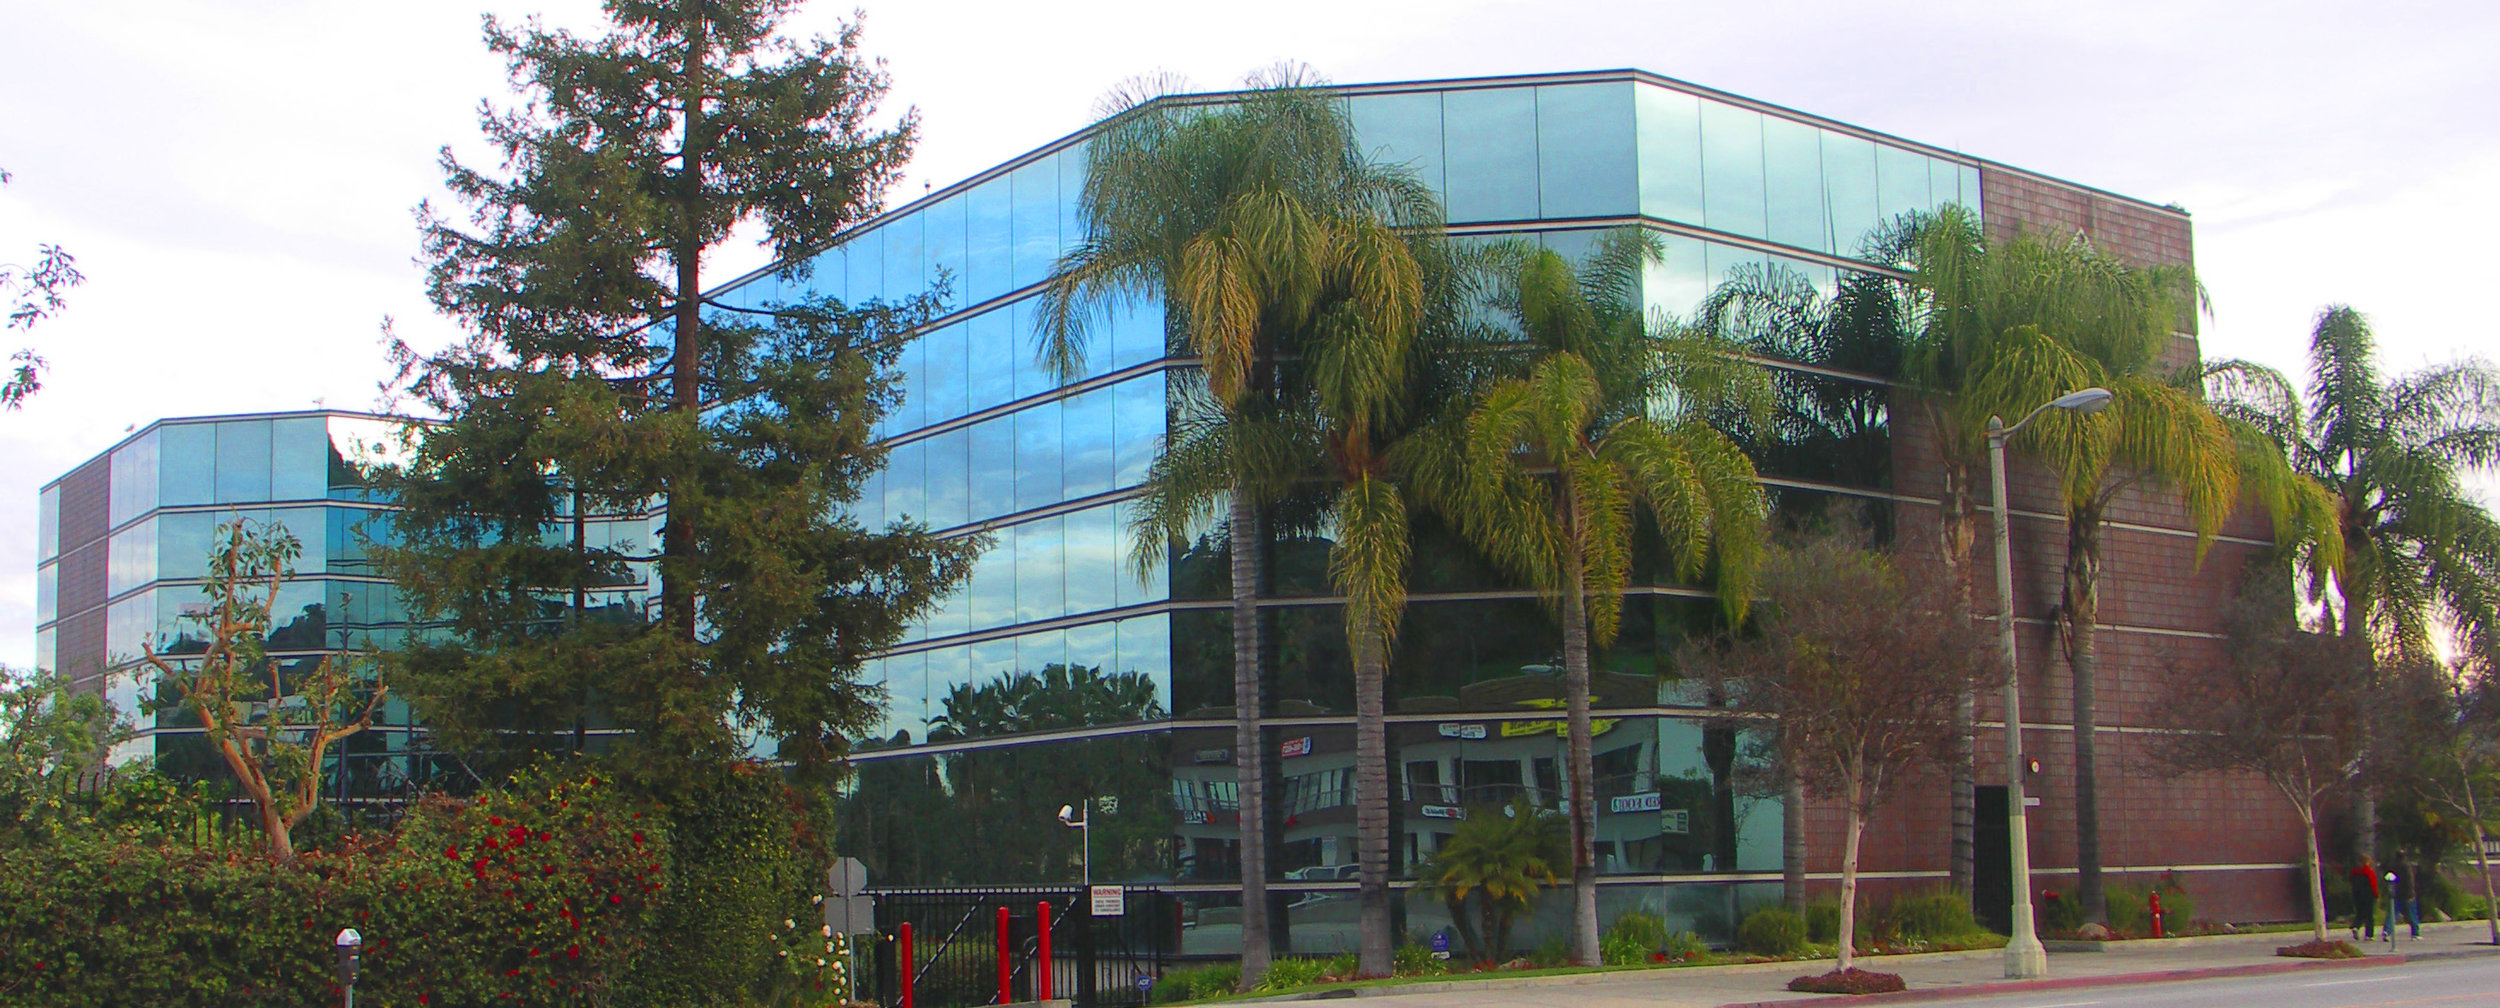 - A view showing the transition from ceramic tile to the reflective curtain wall along the Ventura Boulevard frontage.